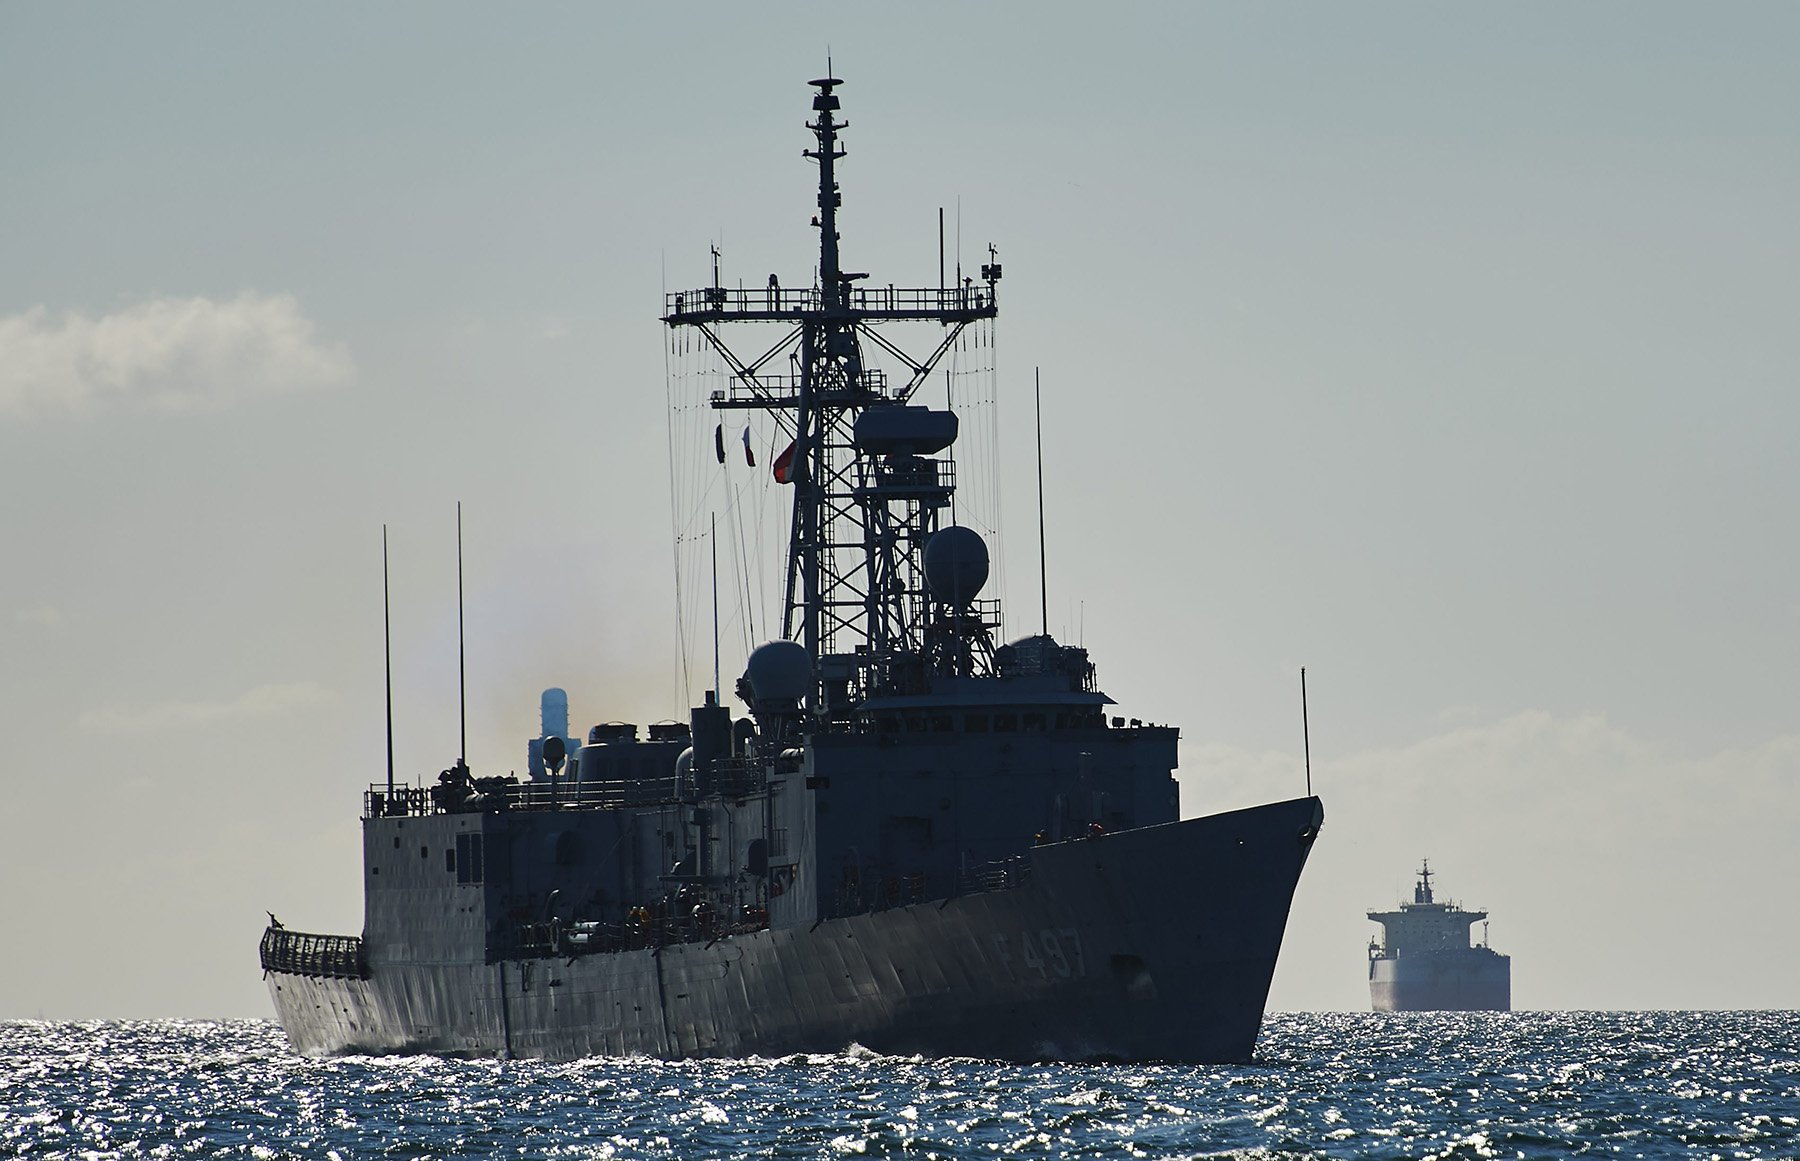 Turkey reacting to Greek-Cypriot led containment policy in East Med 7